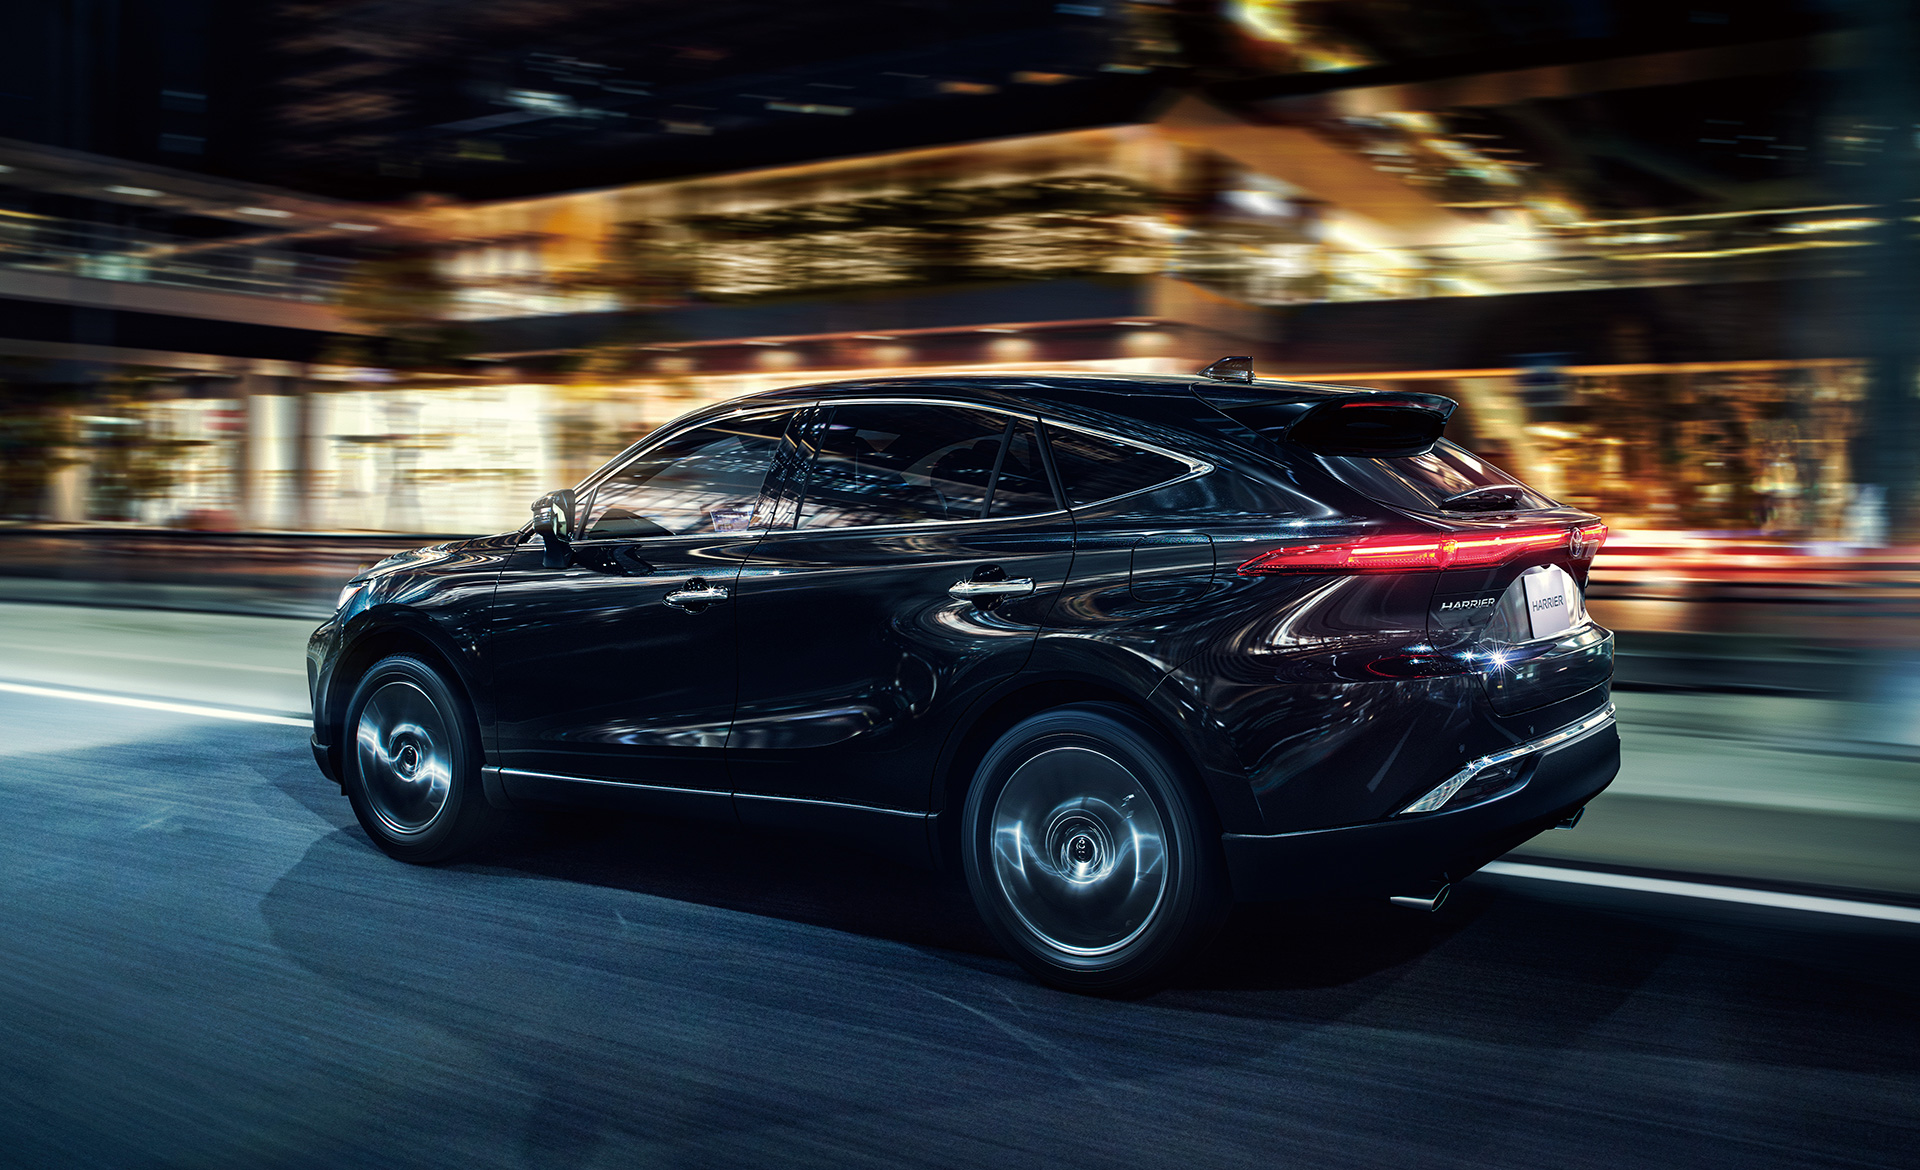 Toyota Launches New Model Harrier in Japan - Image 4